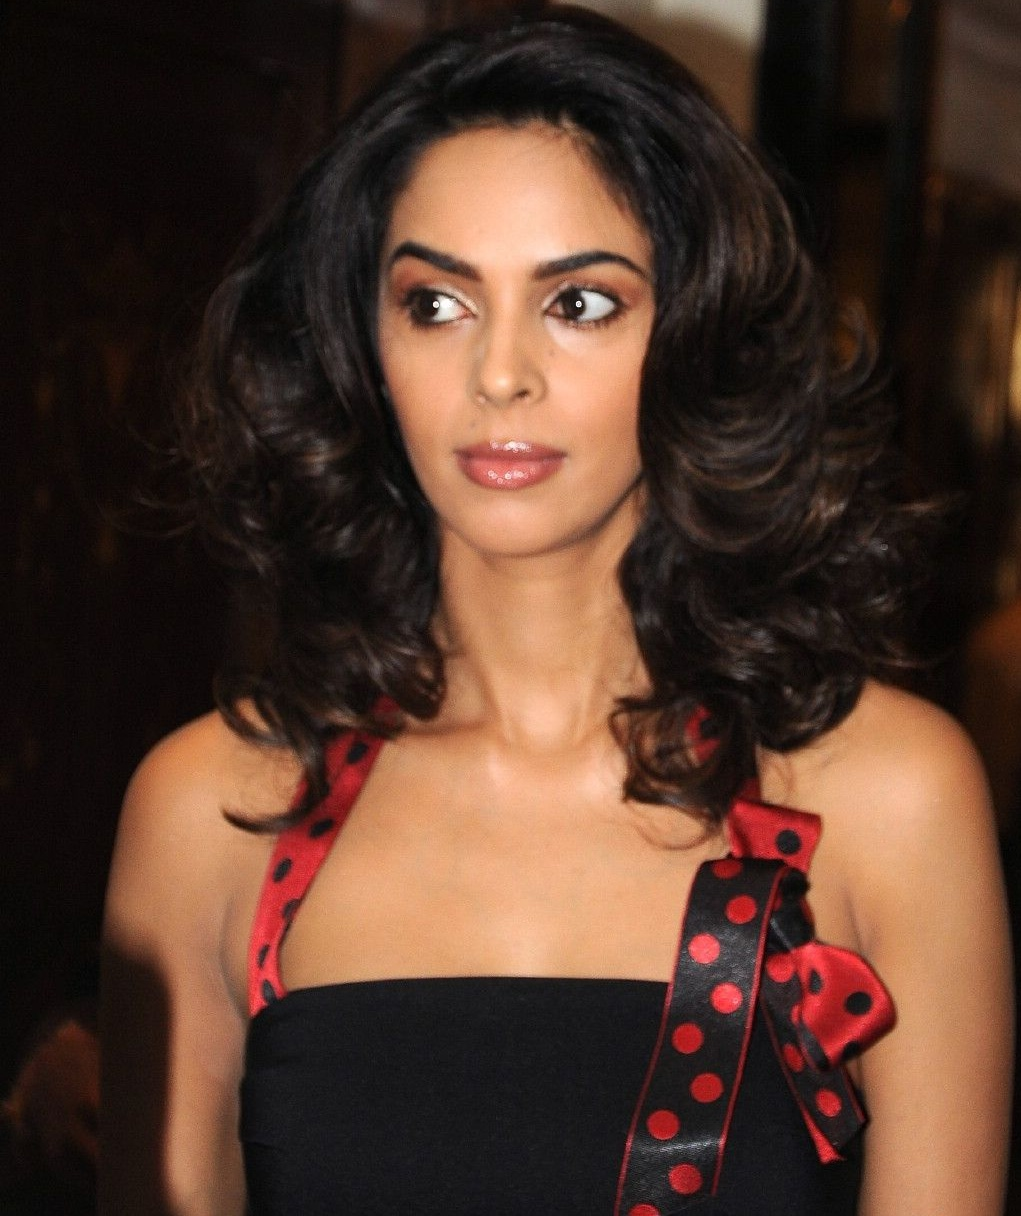 For Mallika sherawat face that can